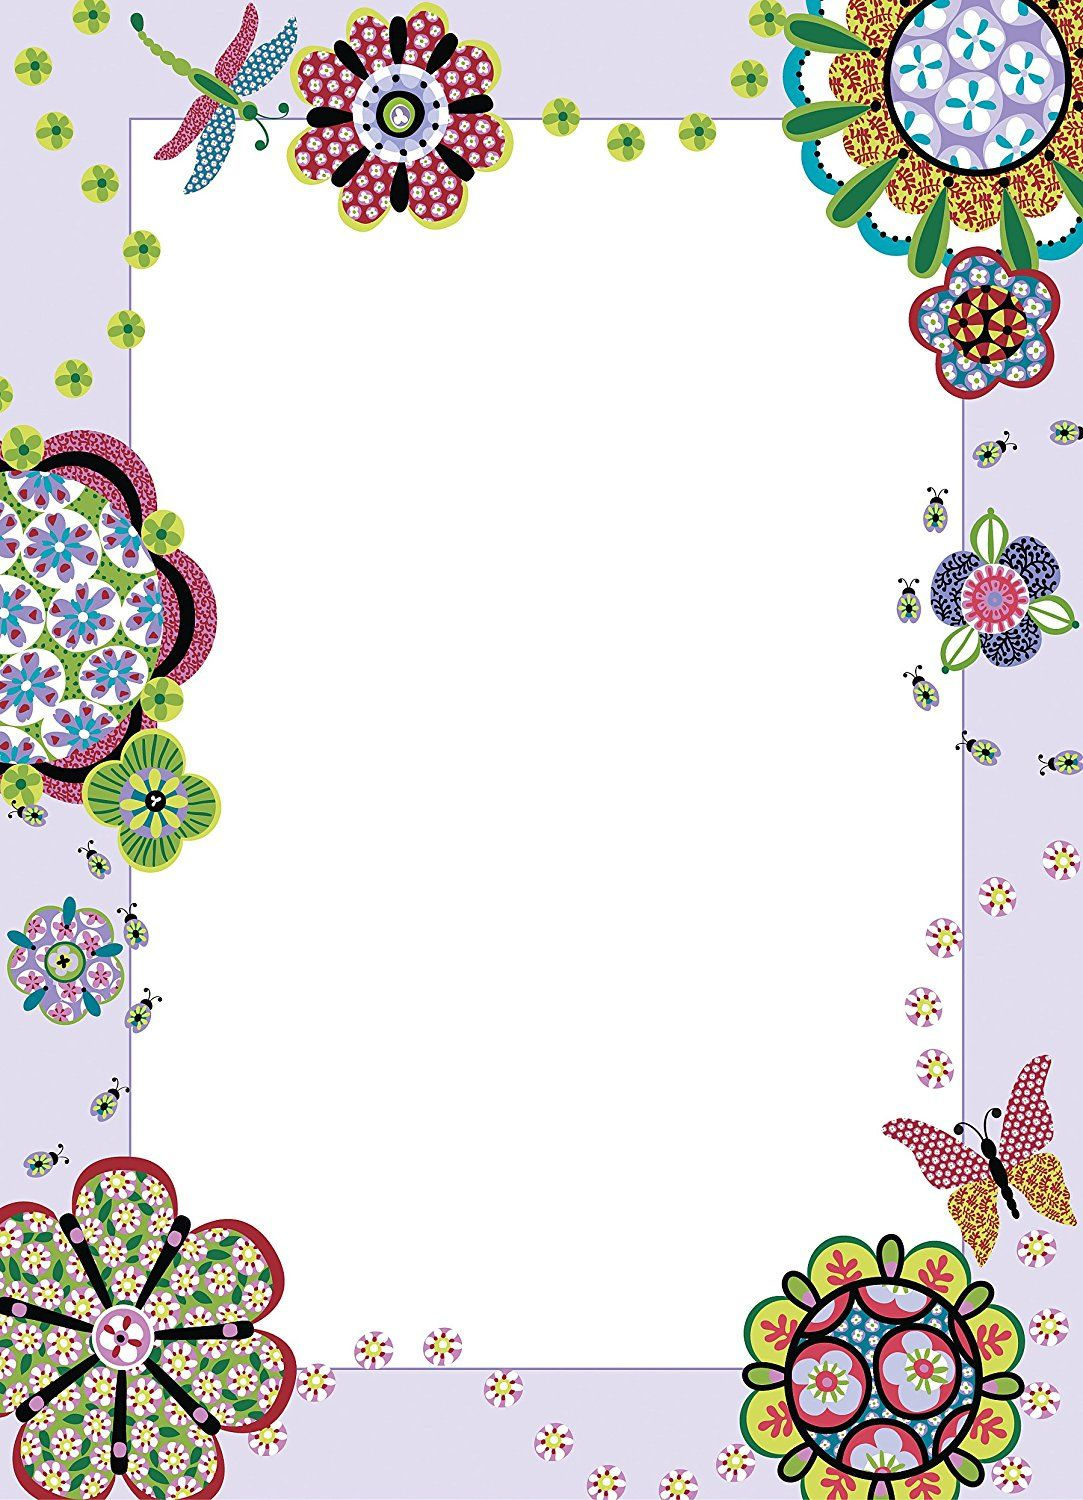 Brewster wall pops wpe99822 peel and stick flower power